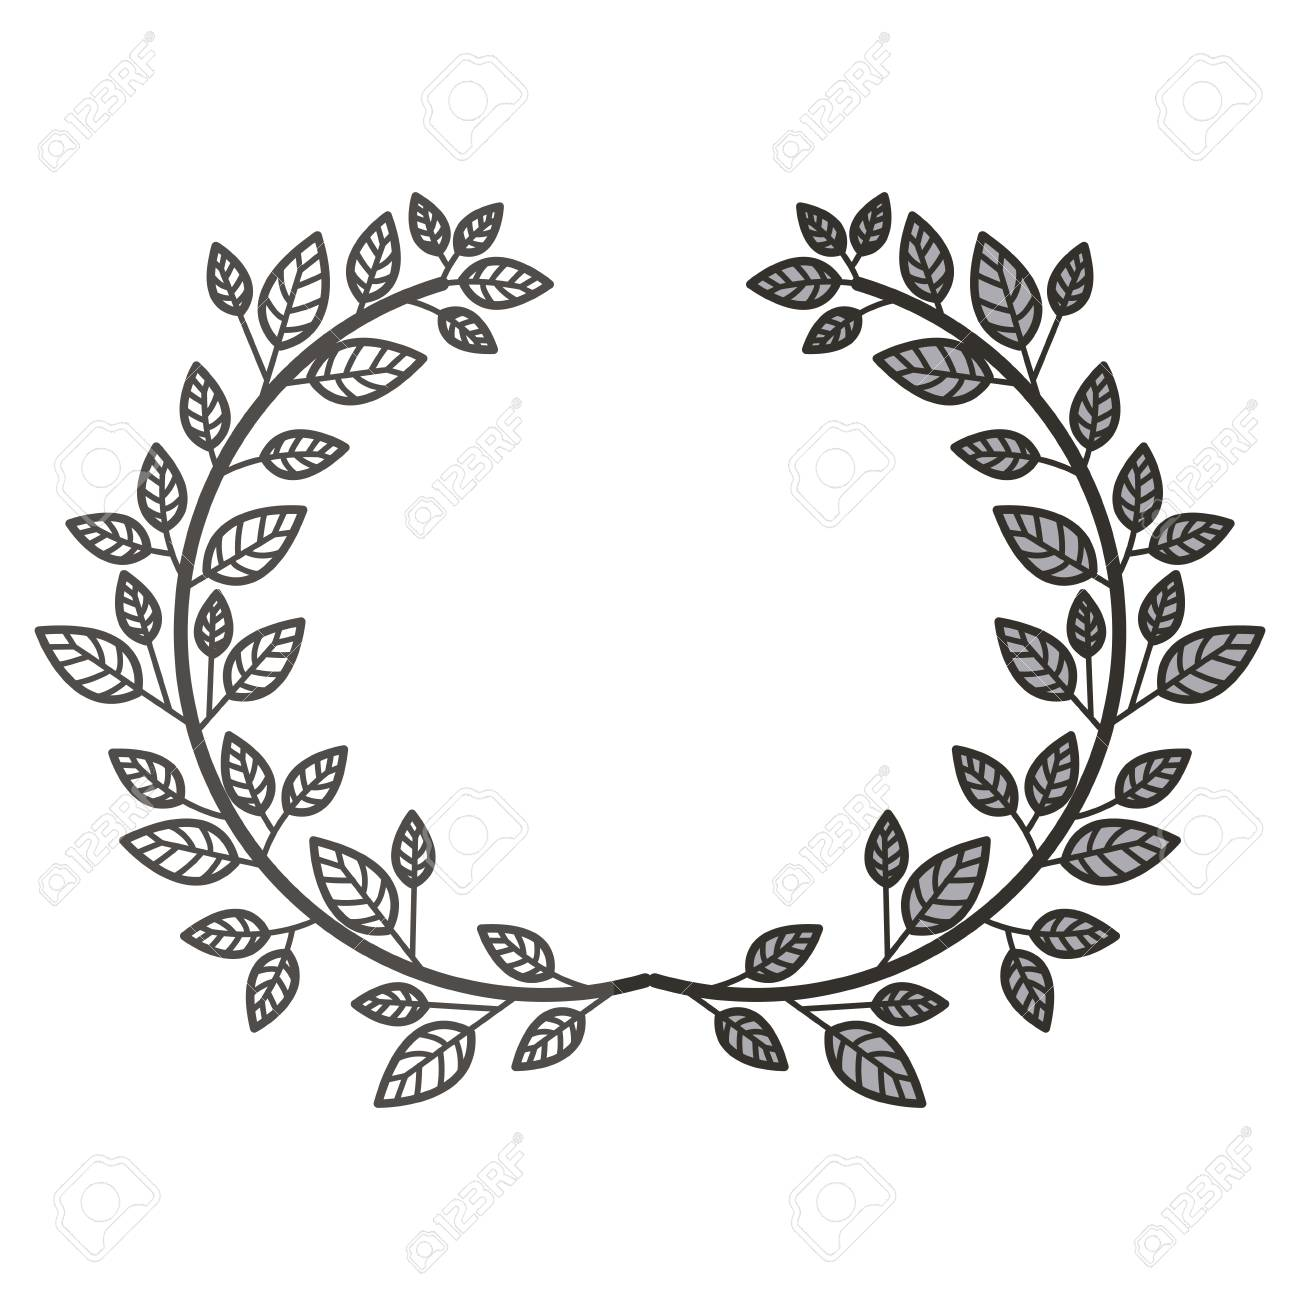 Leaves wreath icon rustic decoration nature spring and invitation leaves wreath icon rustic decoration nature spring and invitation theme isolated design vector stopboris Image collections